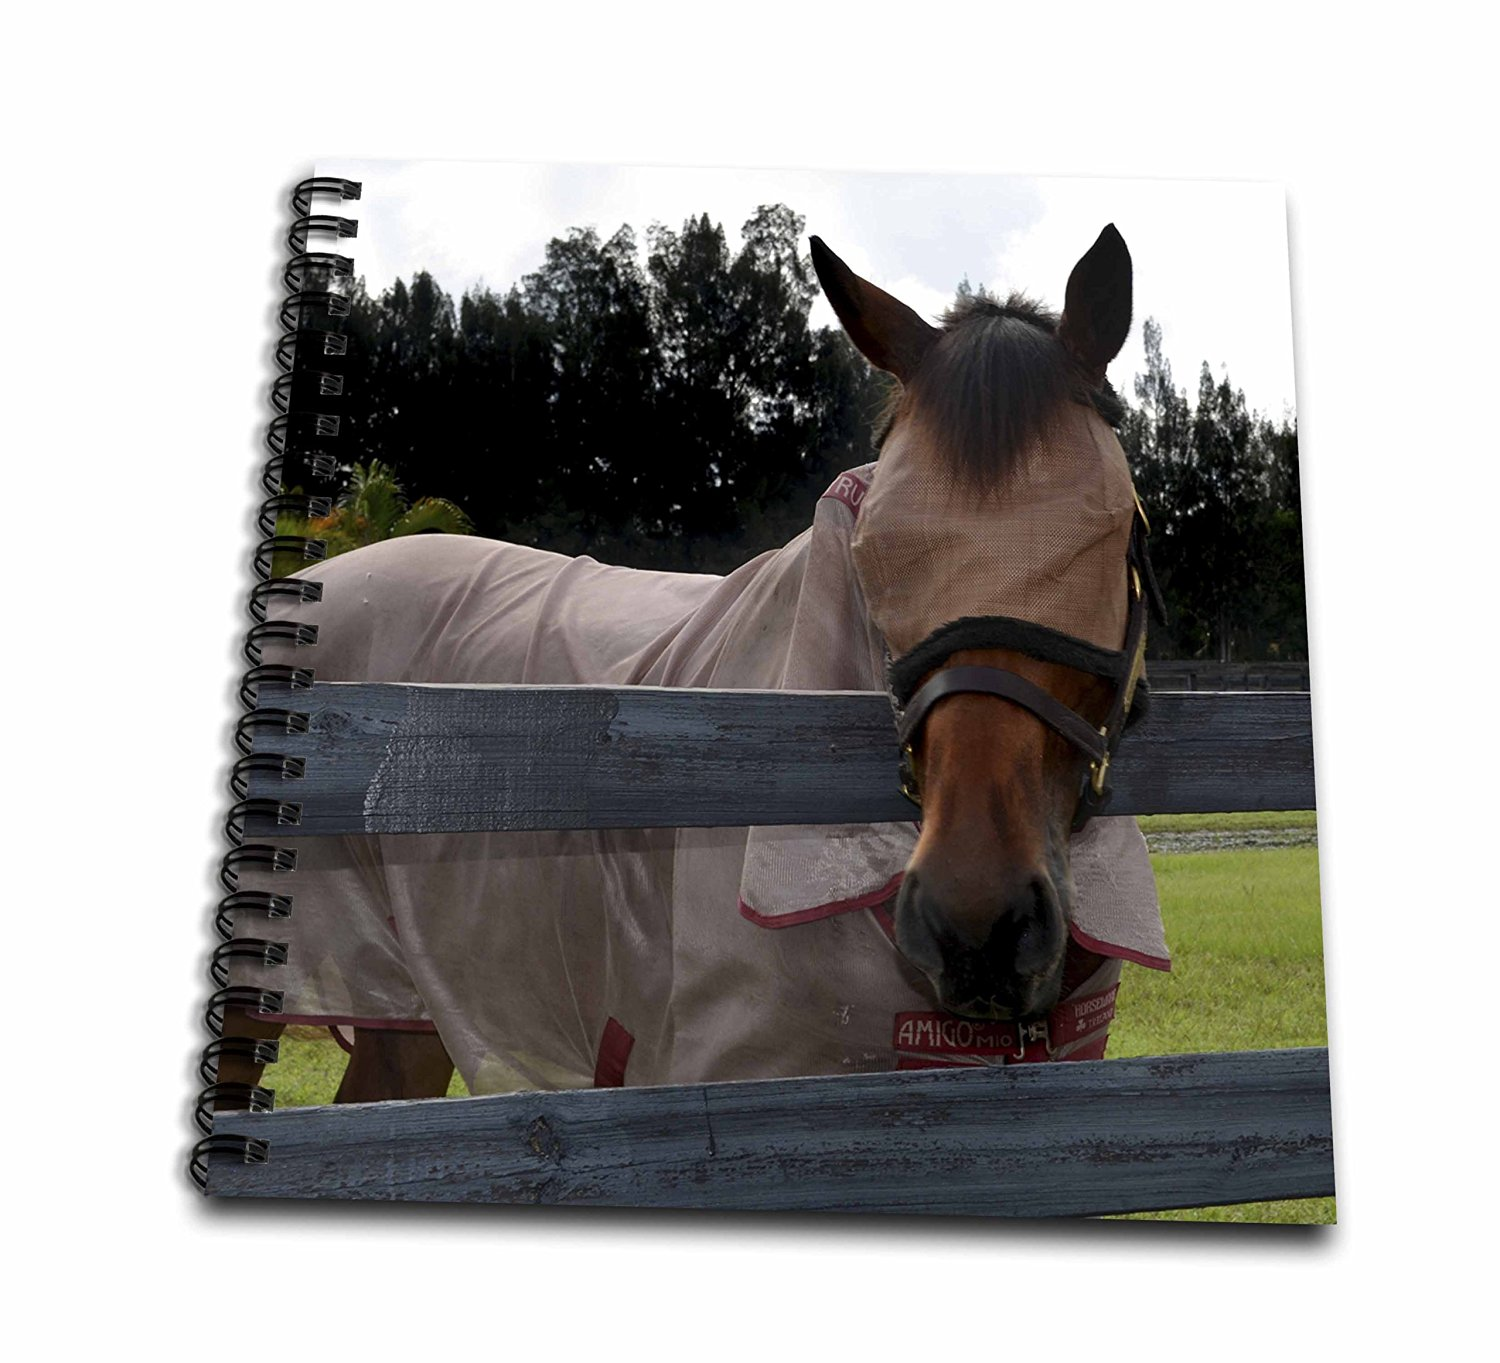 Susans Zoo Crew Animals Horse - Horse head on over fence fly mask - Memory Book 12 x 12 inch (db_162188_2)